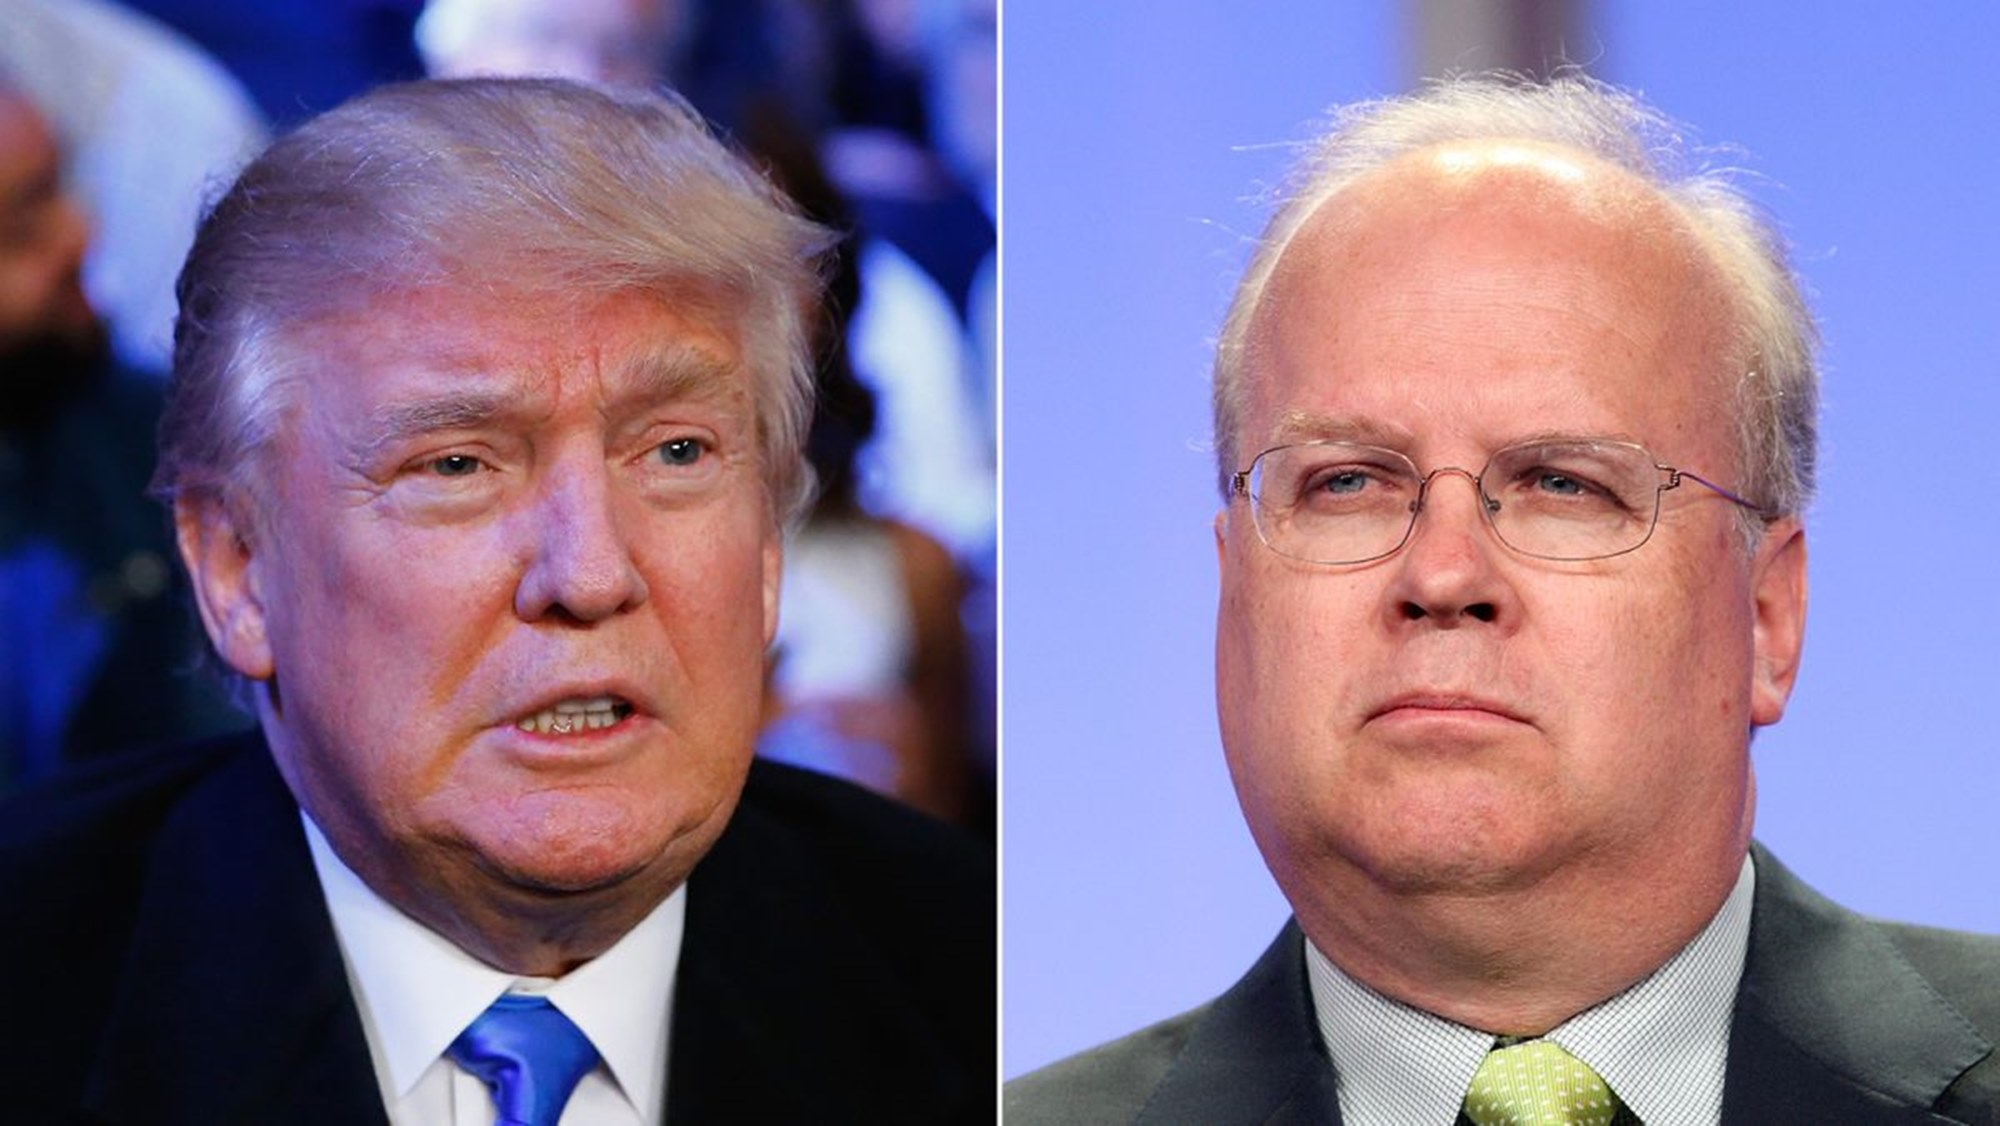 Donald Trump Karl Rove Joe Biden Election 2020